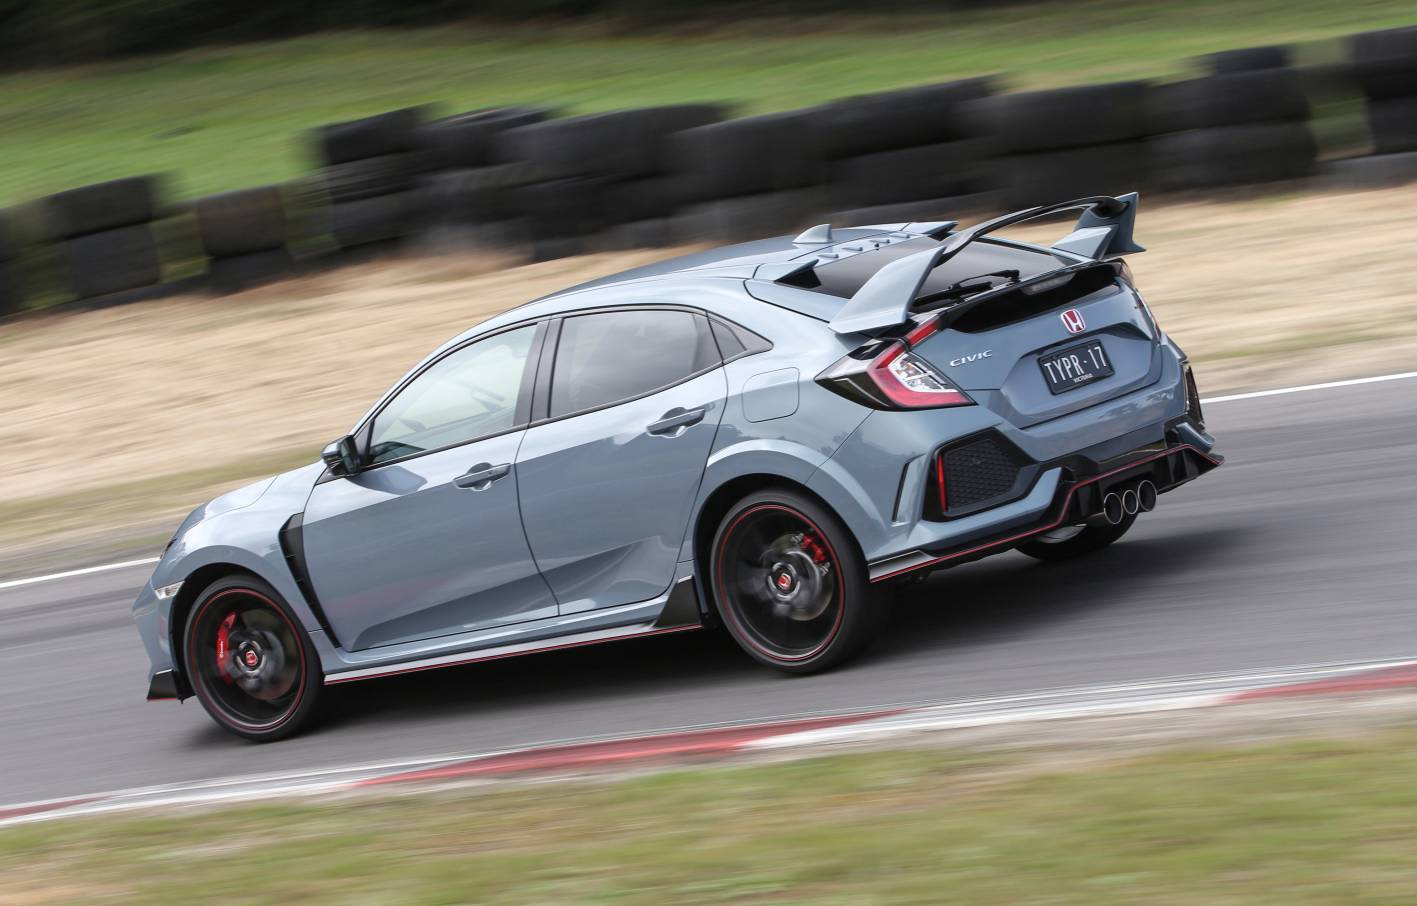 Honda Civic Colours >> 2018 Honda Civic Type R: Technical Overview - ForceGT.com